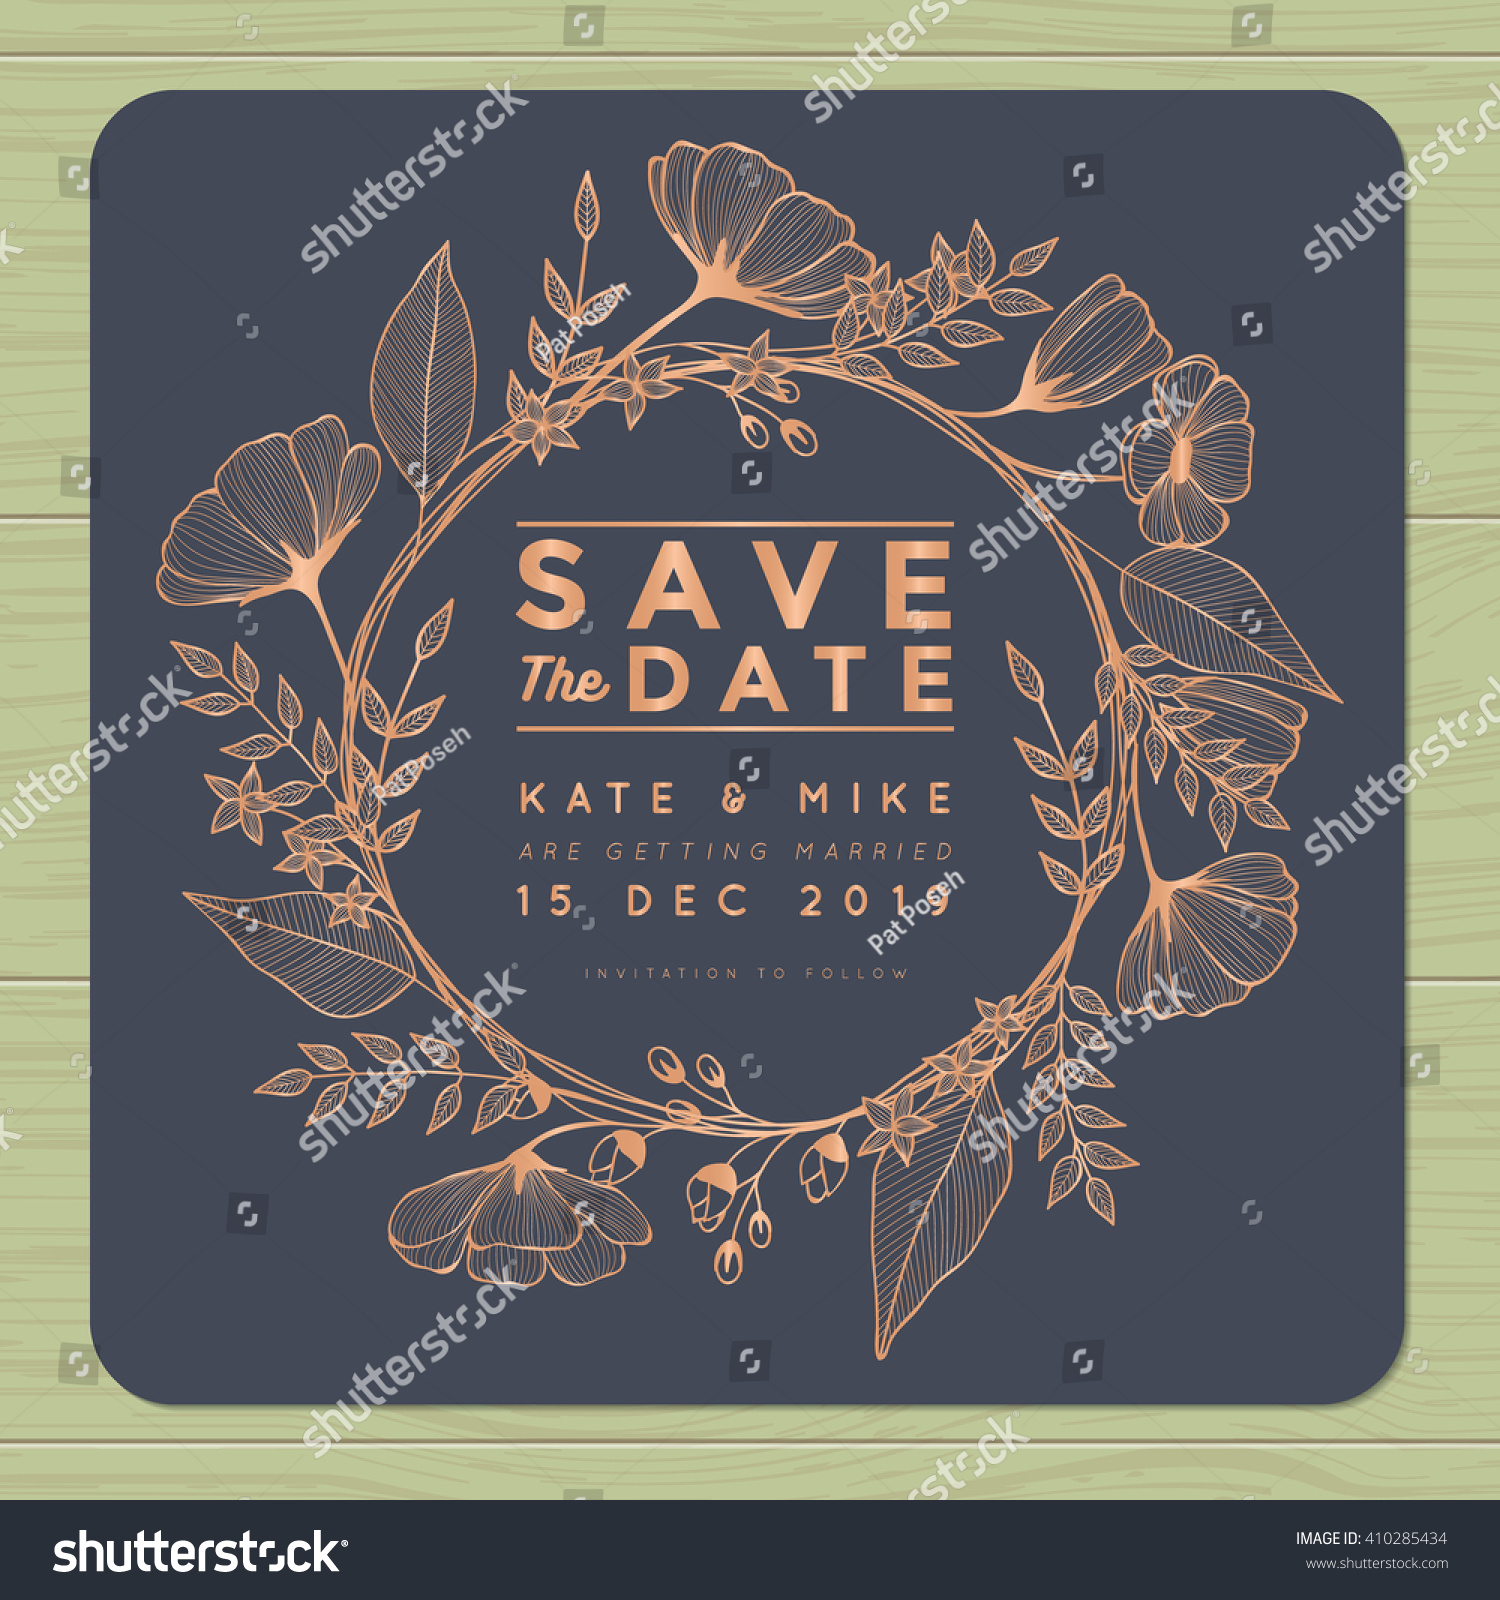 Save The Date Wedding Floral Ornament Wedding Floral: Save Date Wedding Invitation Card Wreath Stock Vector